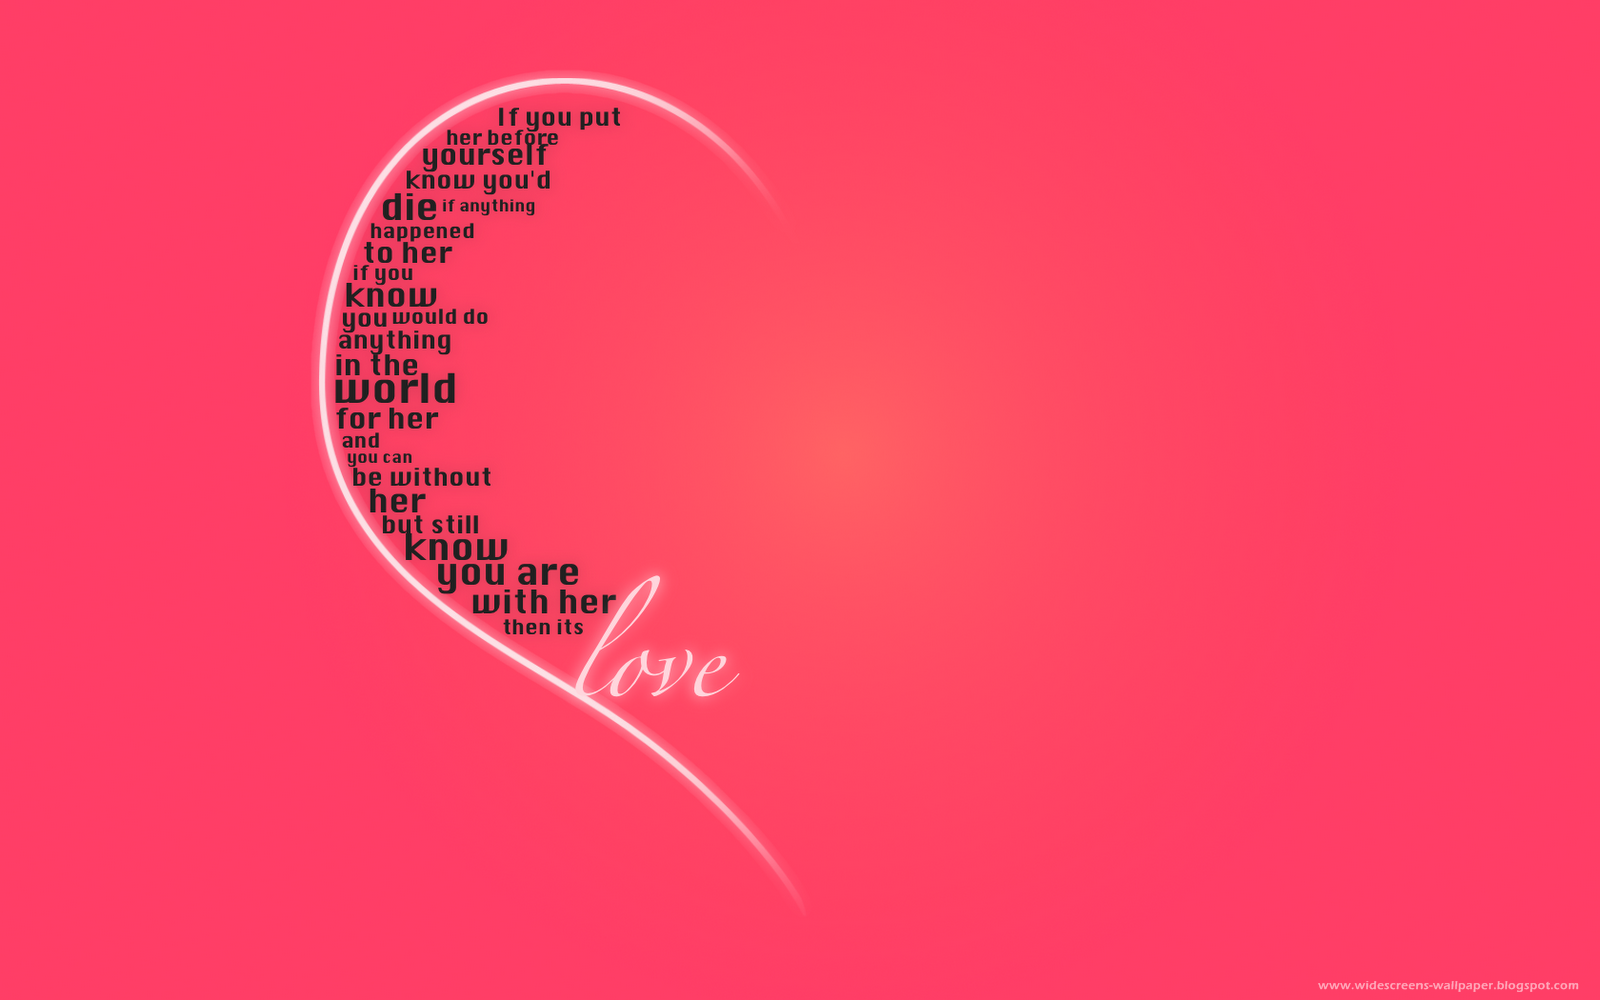 Love Wallpaper All New : Wallpaper collection For Your computer and Mobile Phones: New Romantic Love Words And Quotations ...